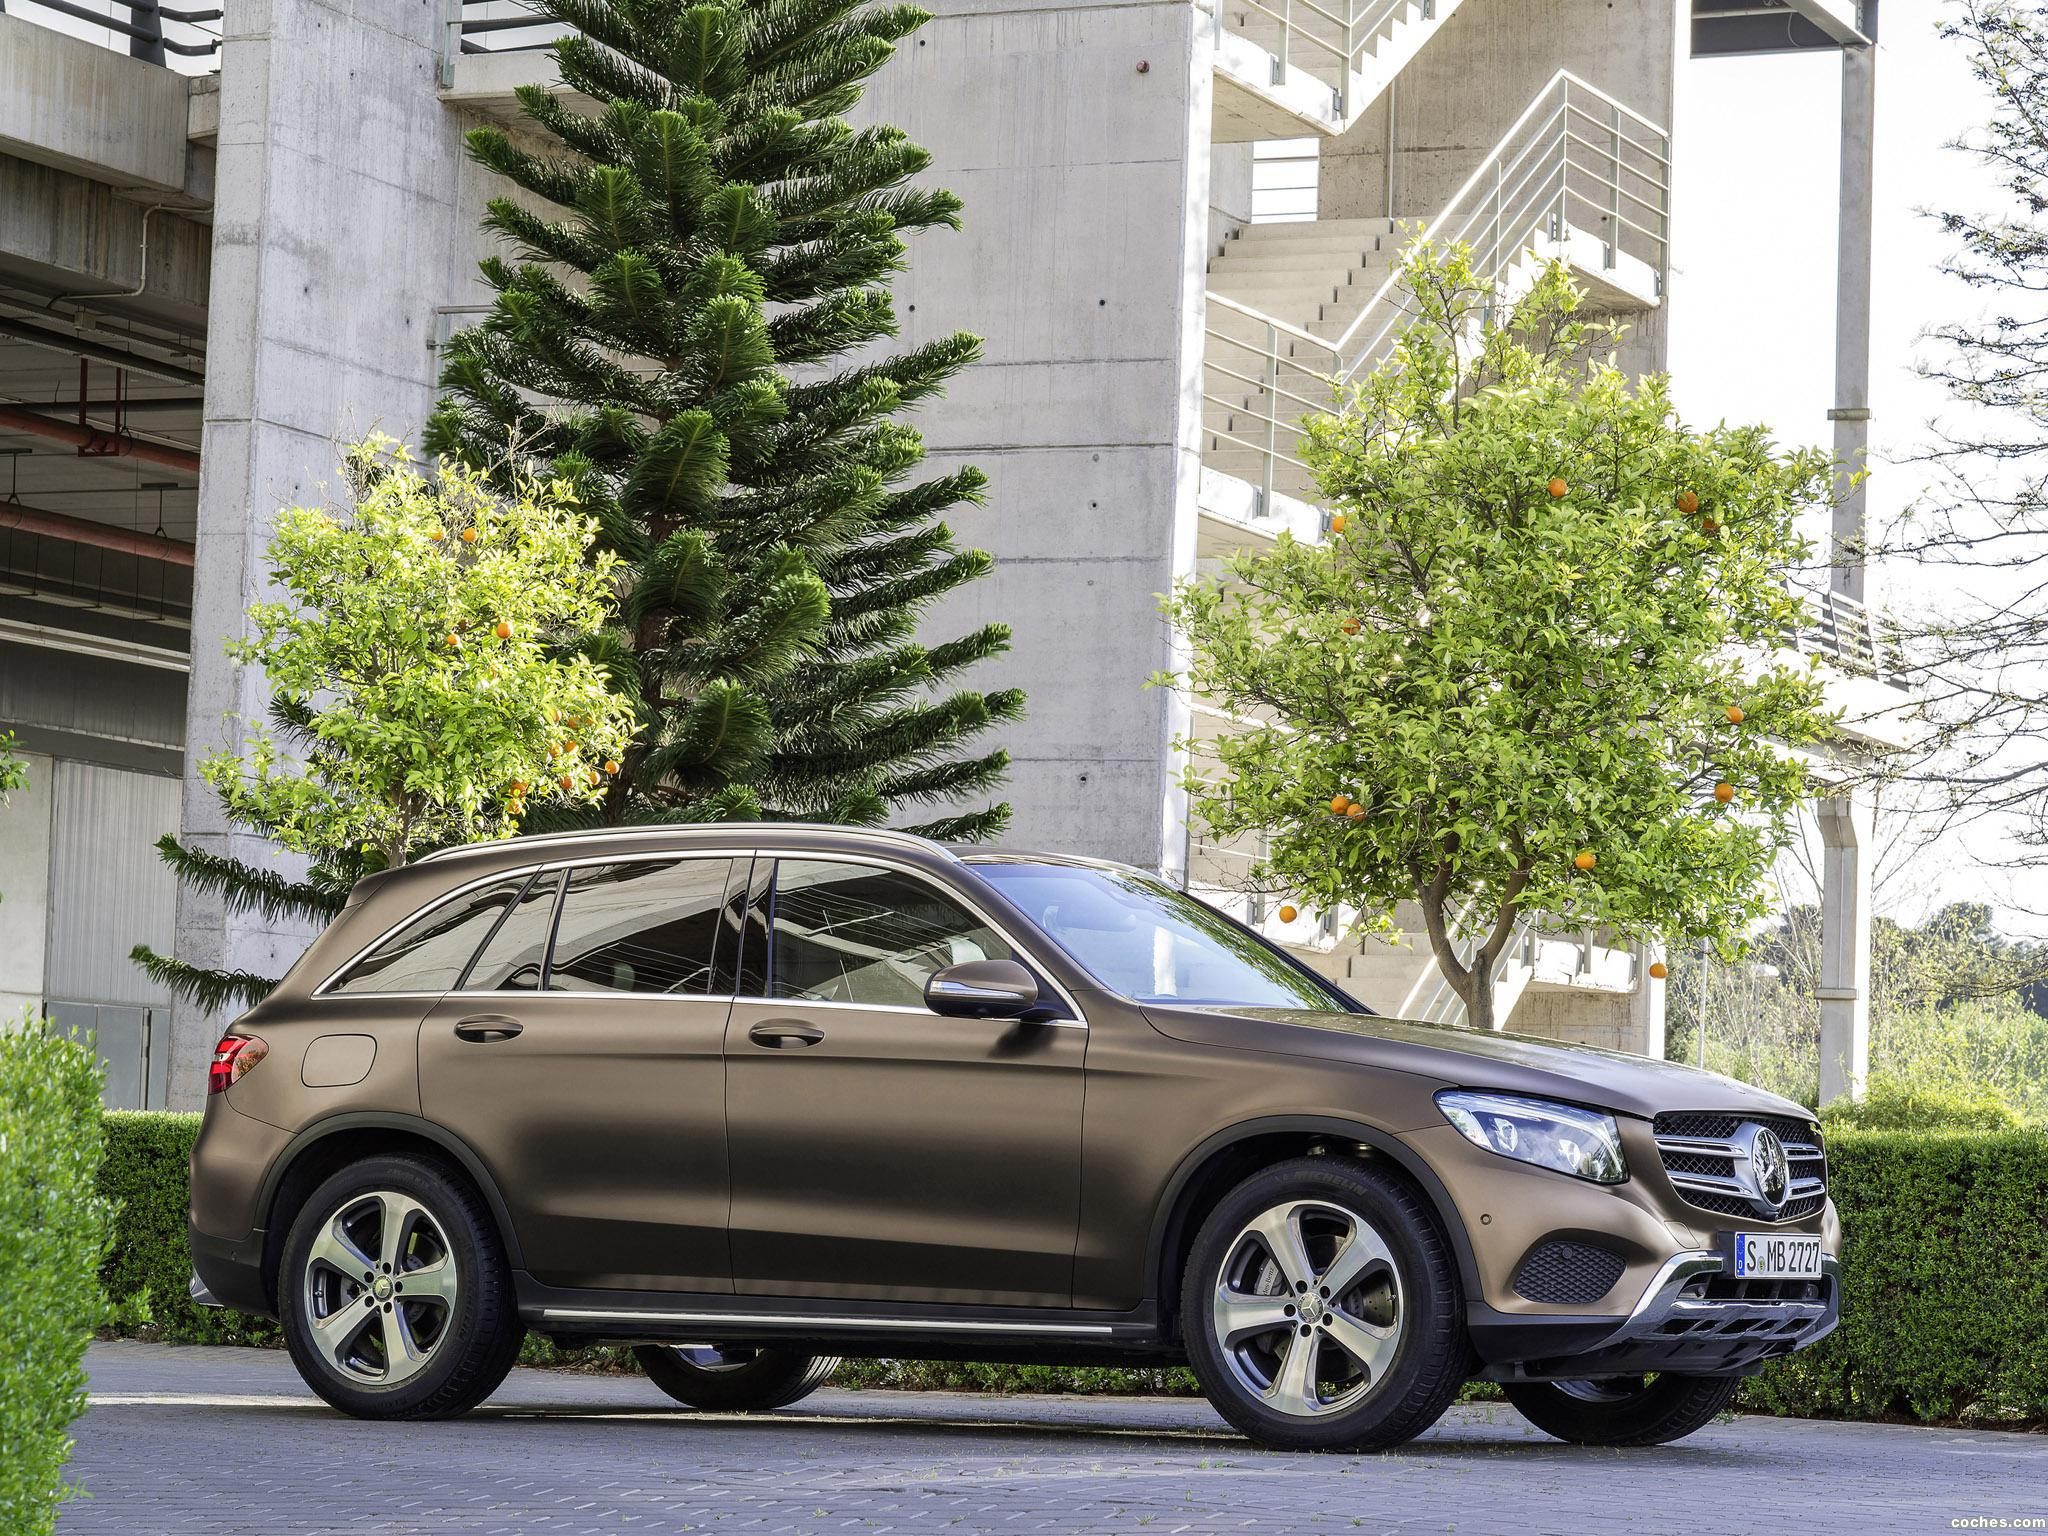 Foto 22 de Mercedes GLC 250 d 4MATIC X205 2015